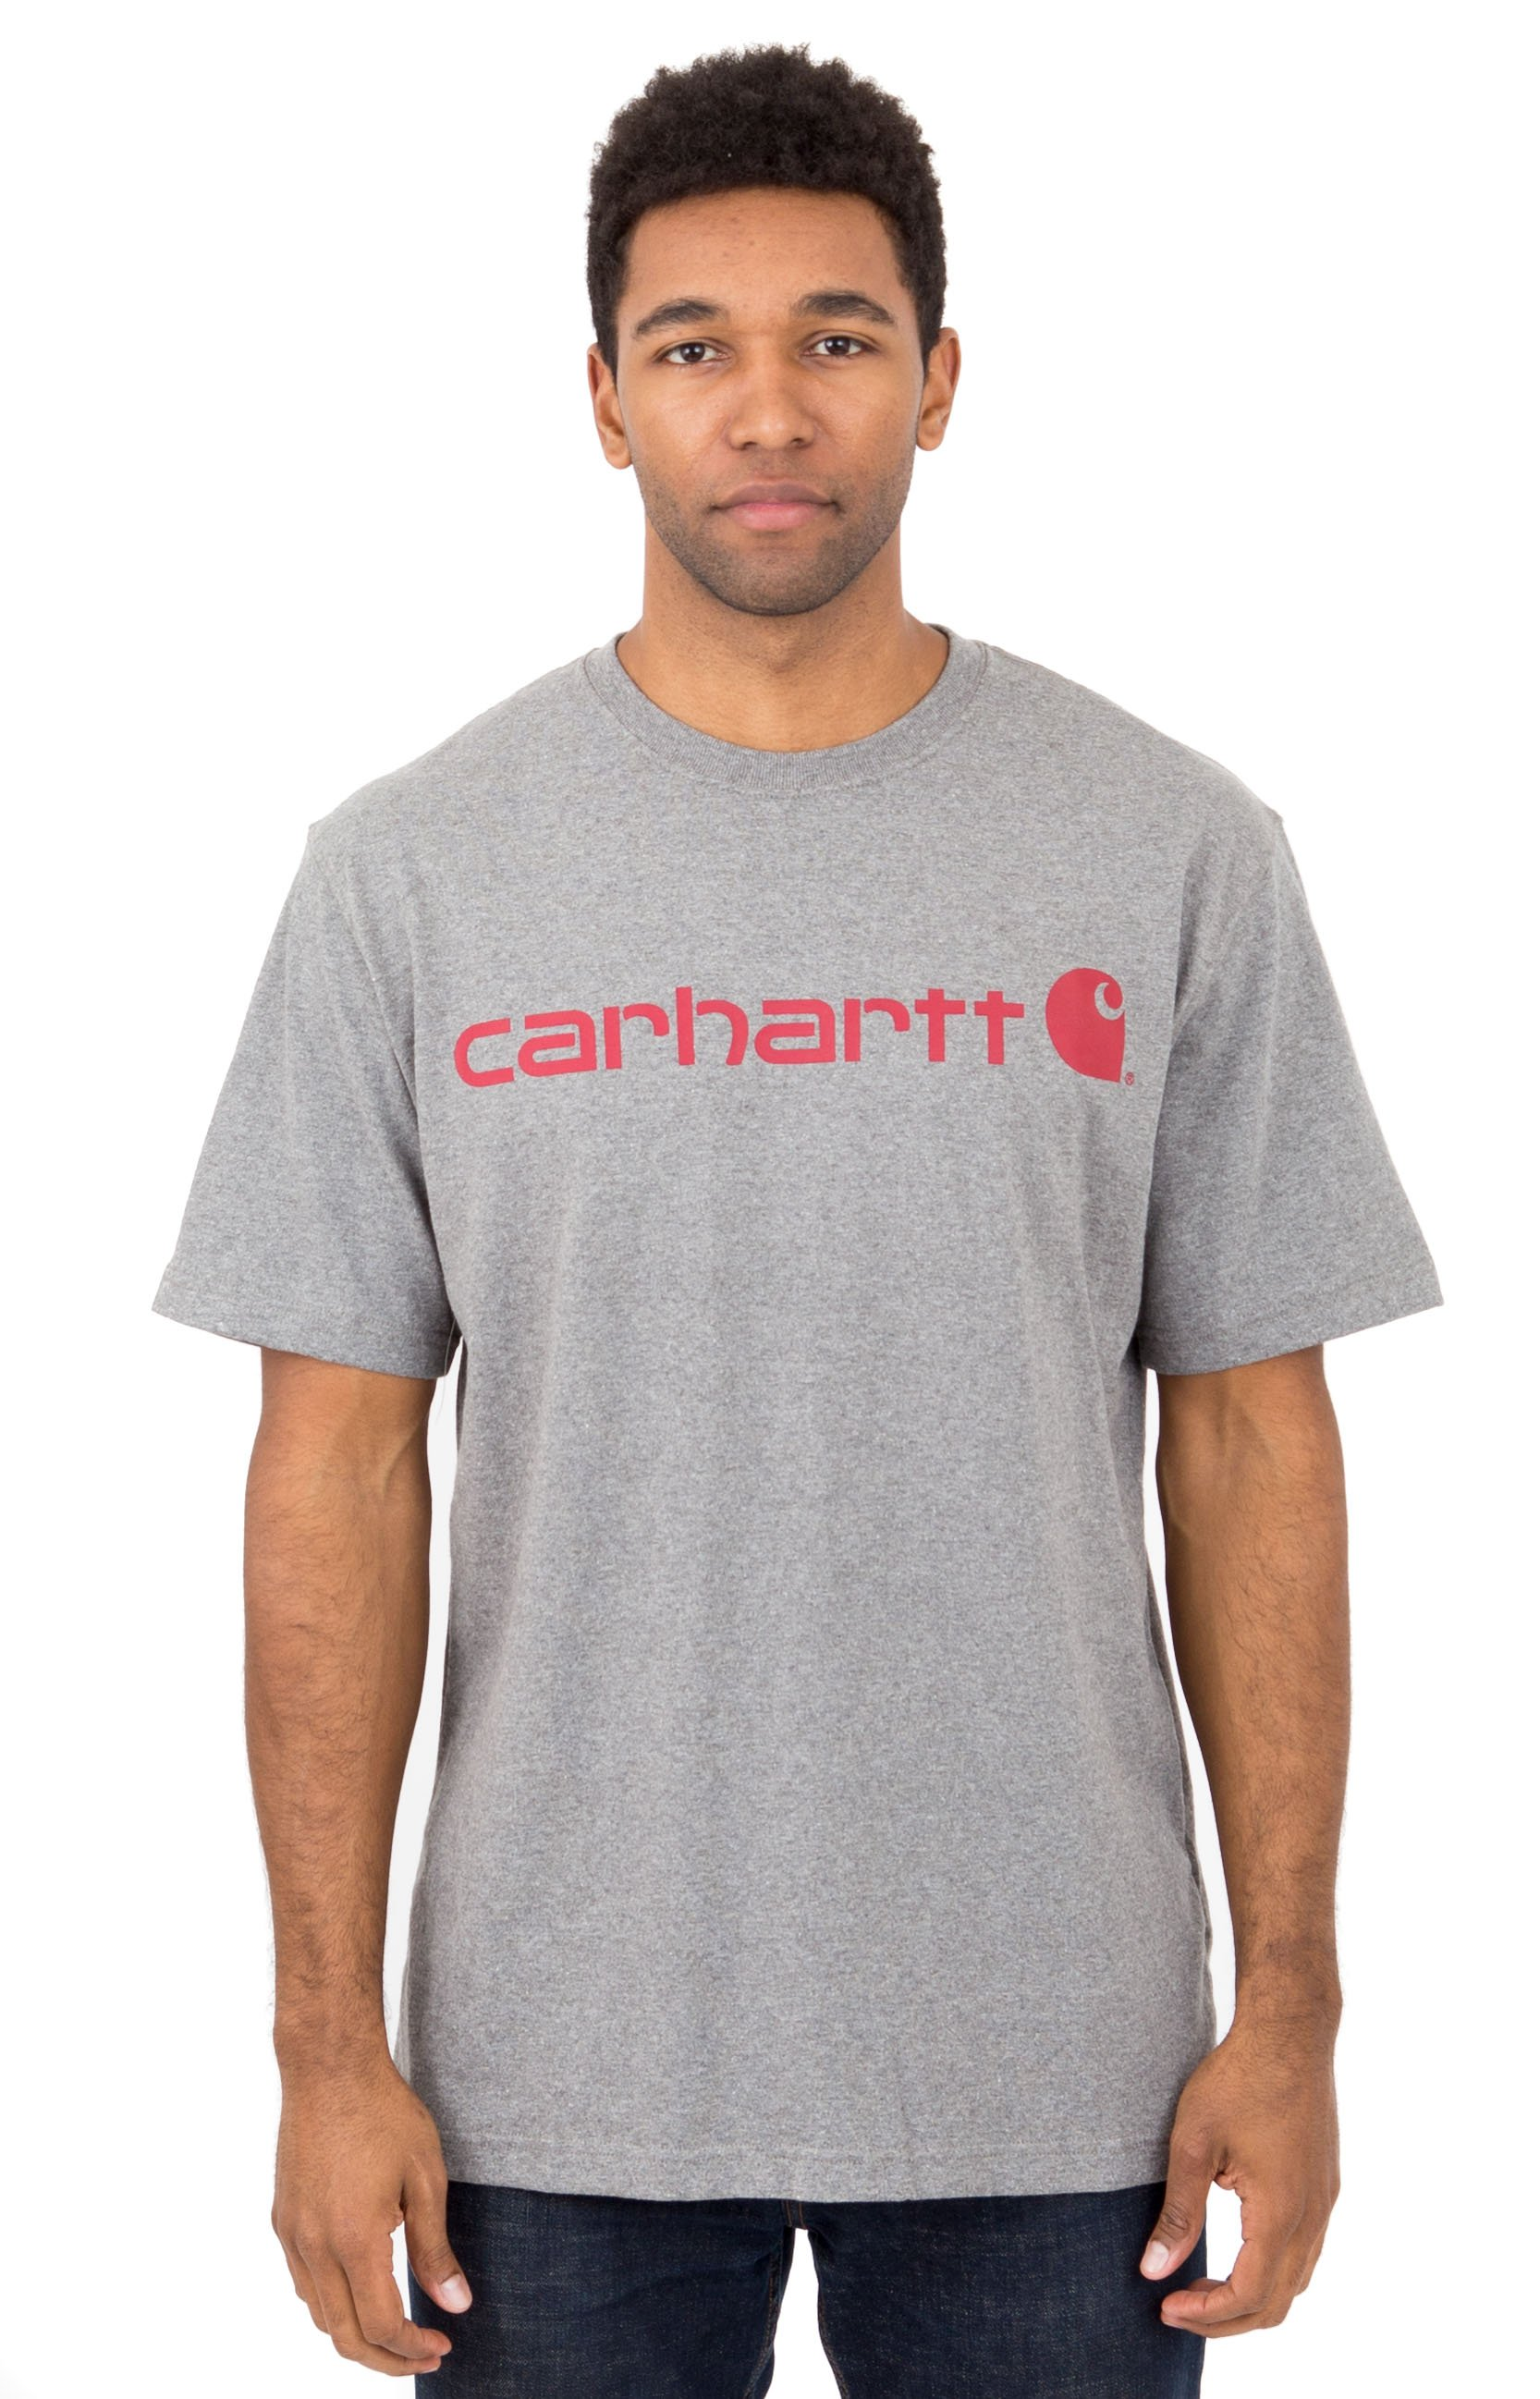 Carhartt, (K195) S/S Signature Logo T-Shirt - Granite Heather